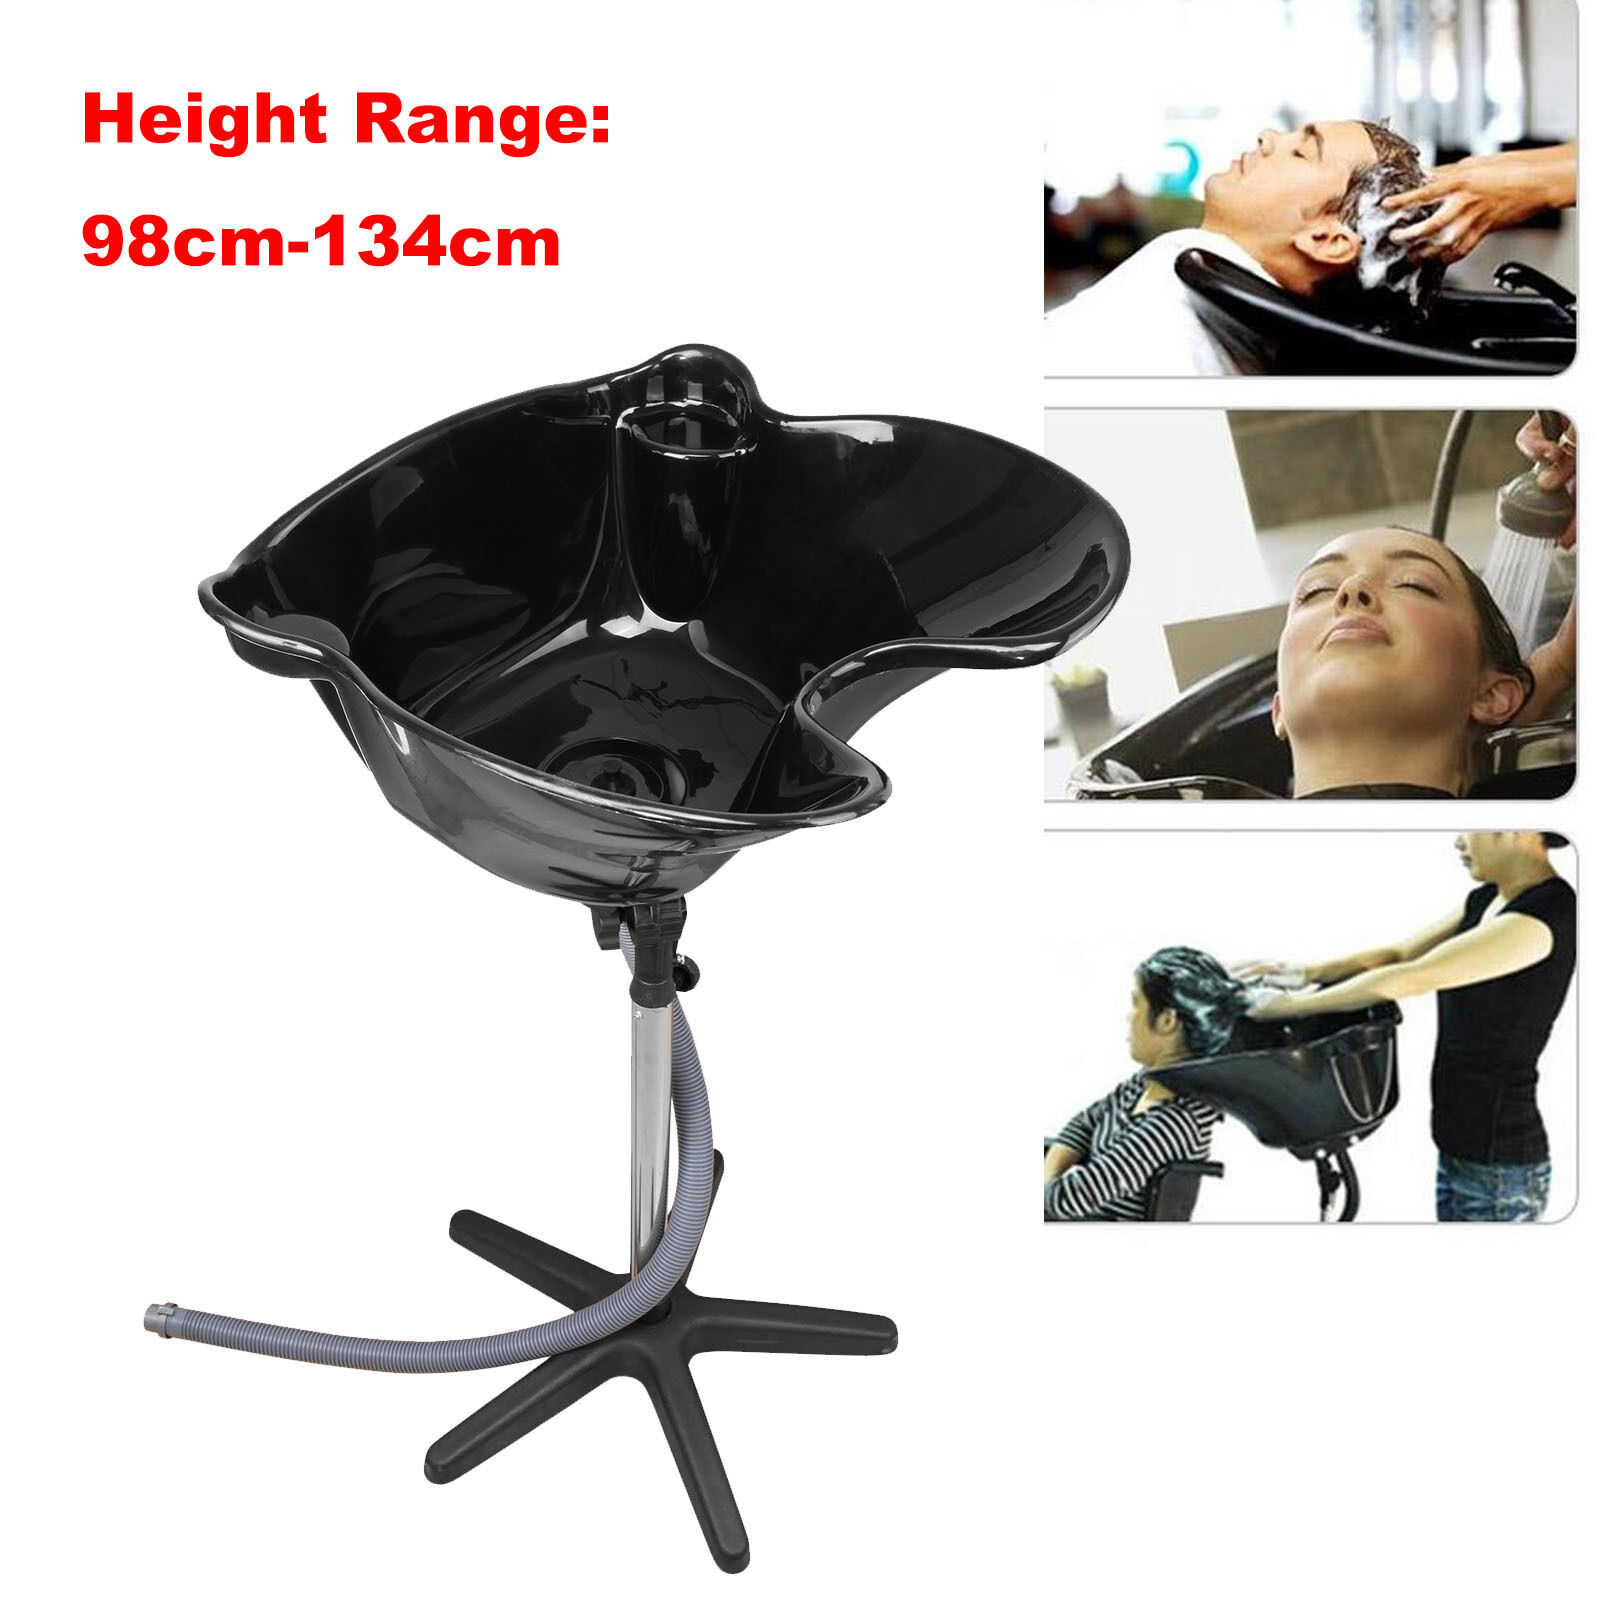 Salon Mobile Portable Hairdressing Washing Hair Basin Backwash Shampoo Bowl